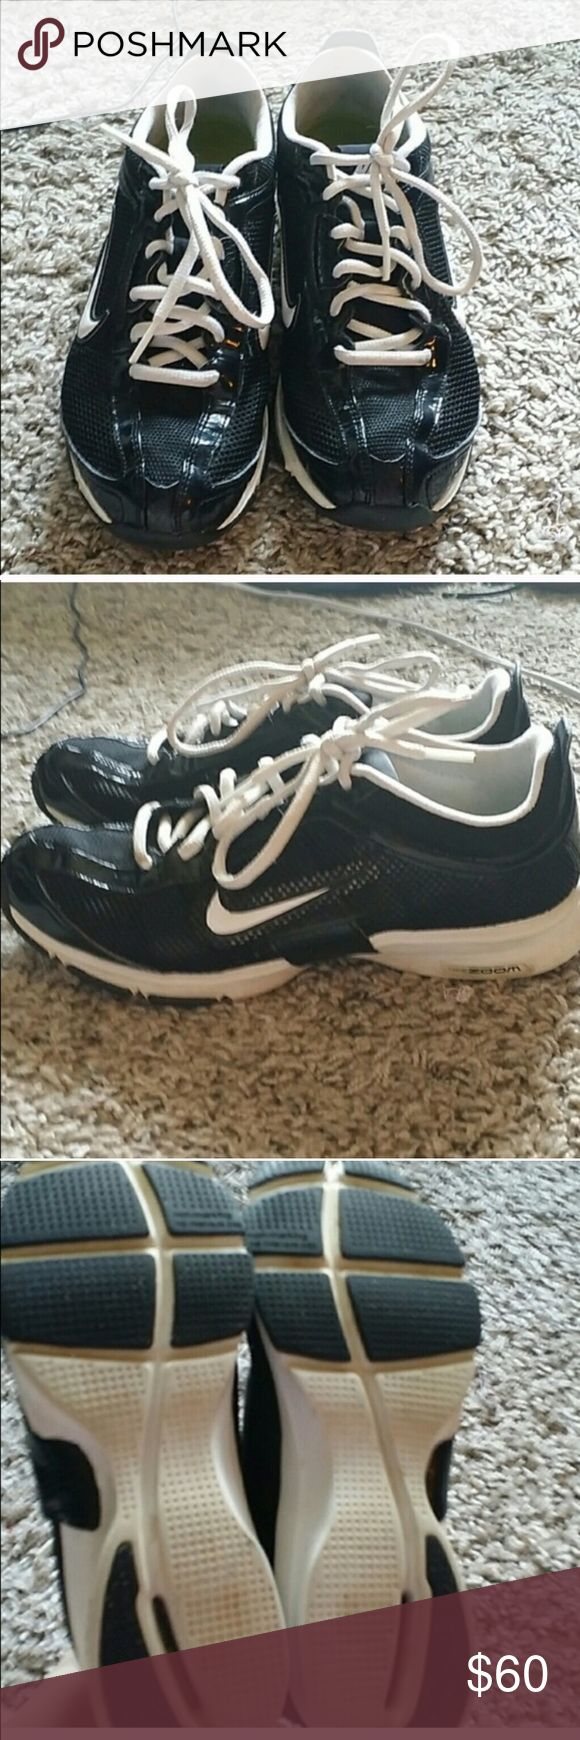 Nike size 7.5 black and white sneakers Nike size 7.5 black and white sneakers Nike Shoes Sneakers